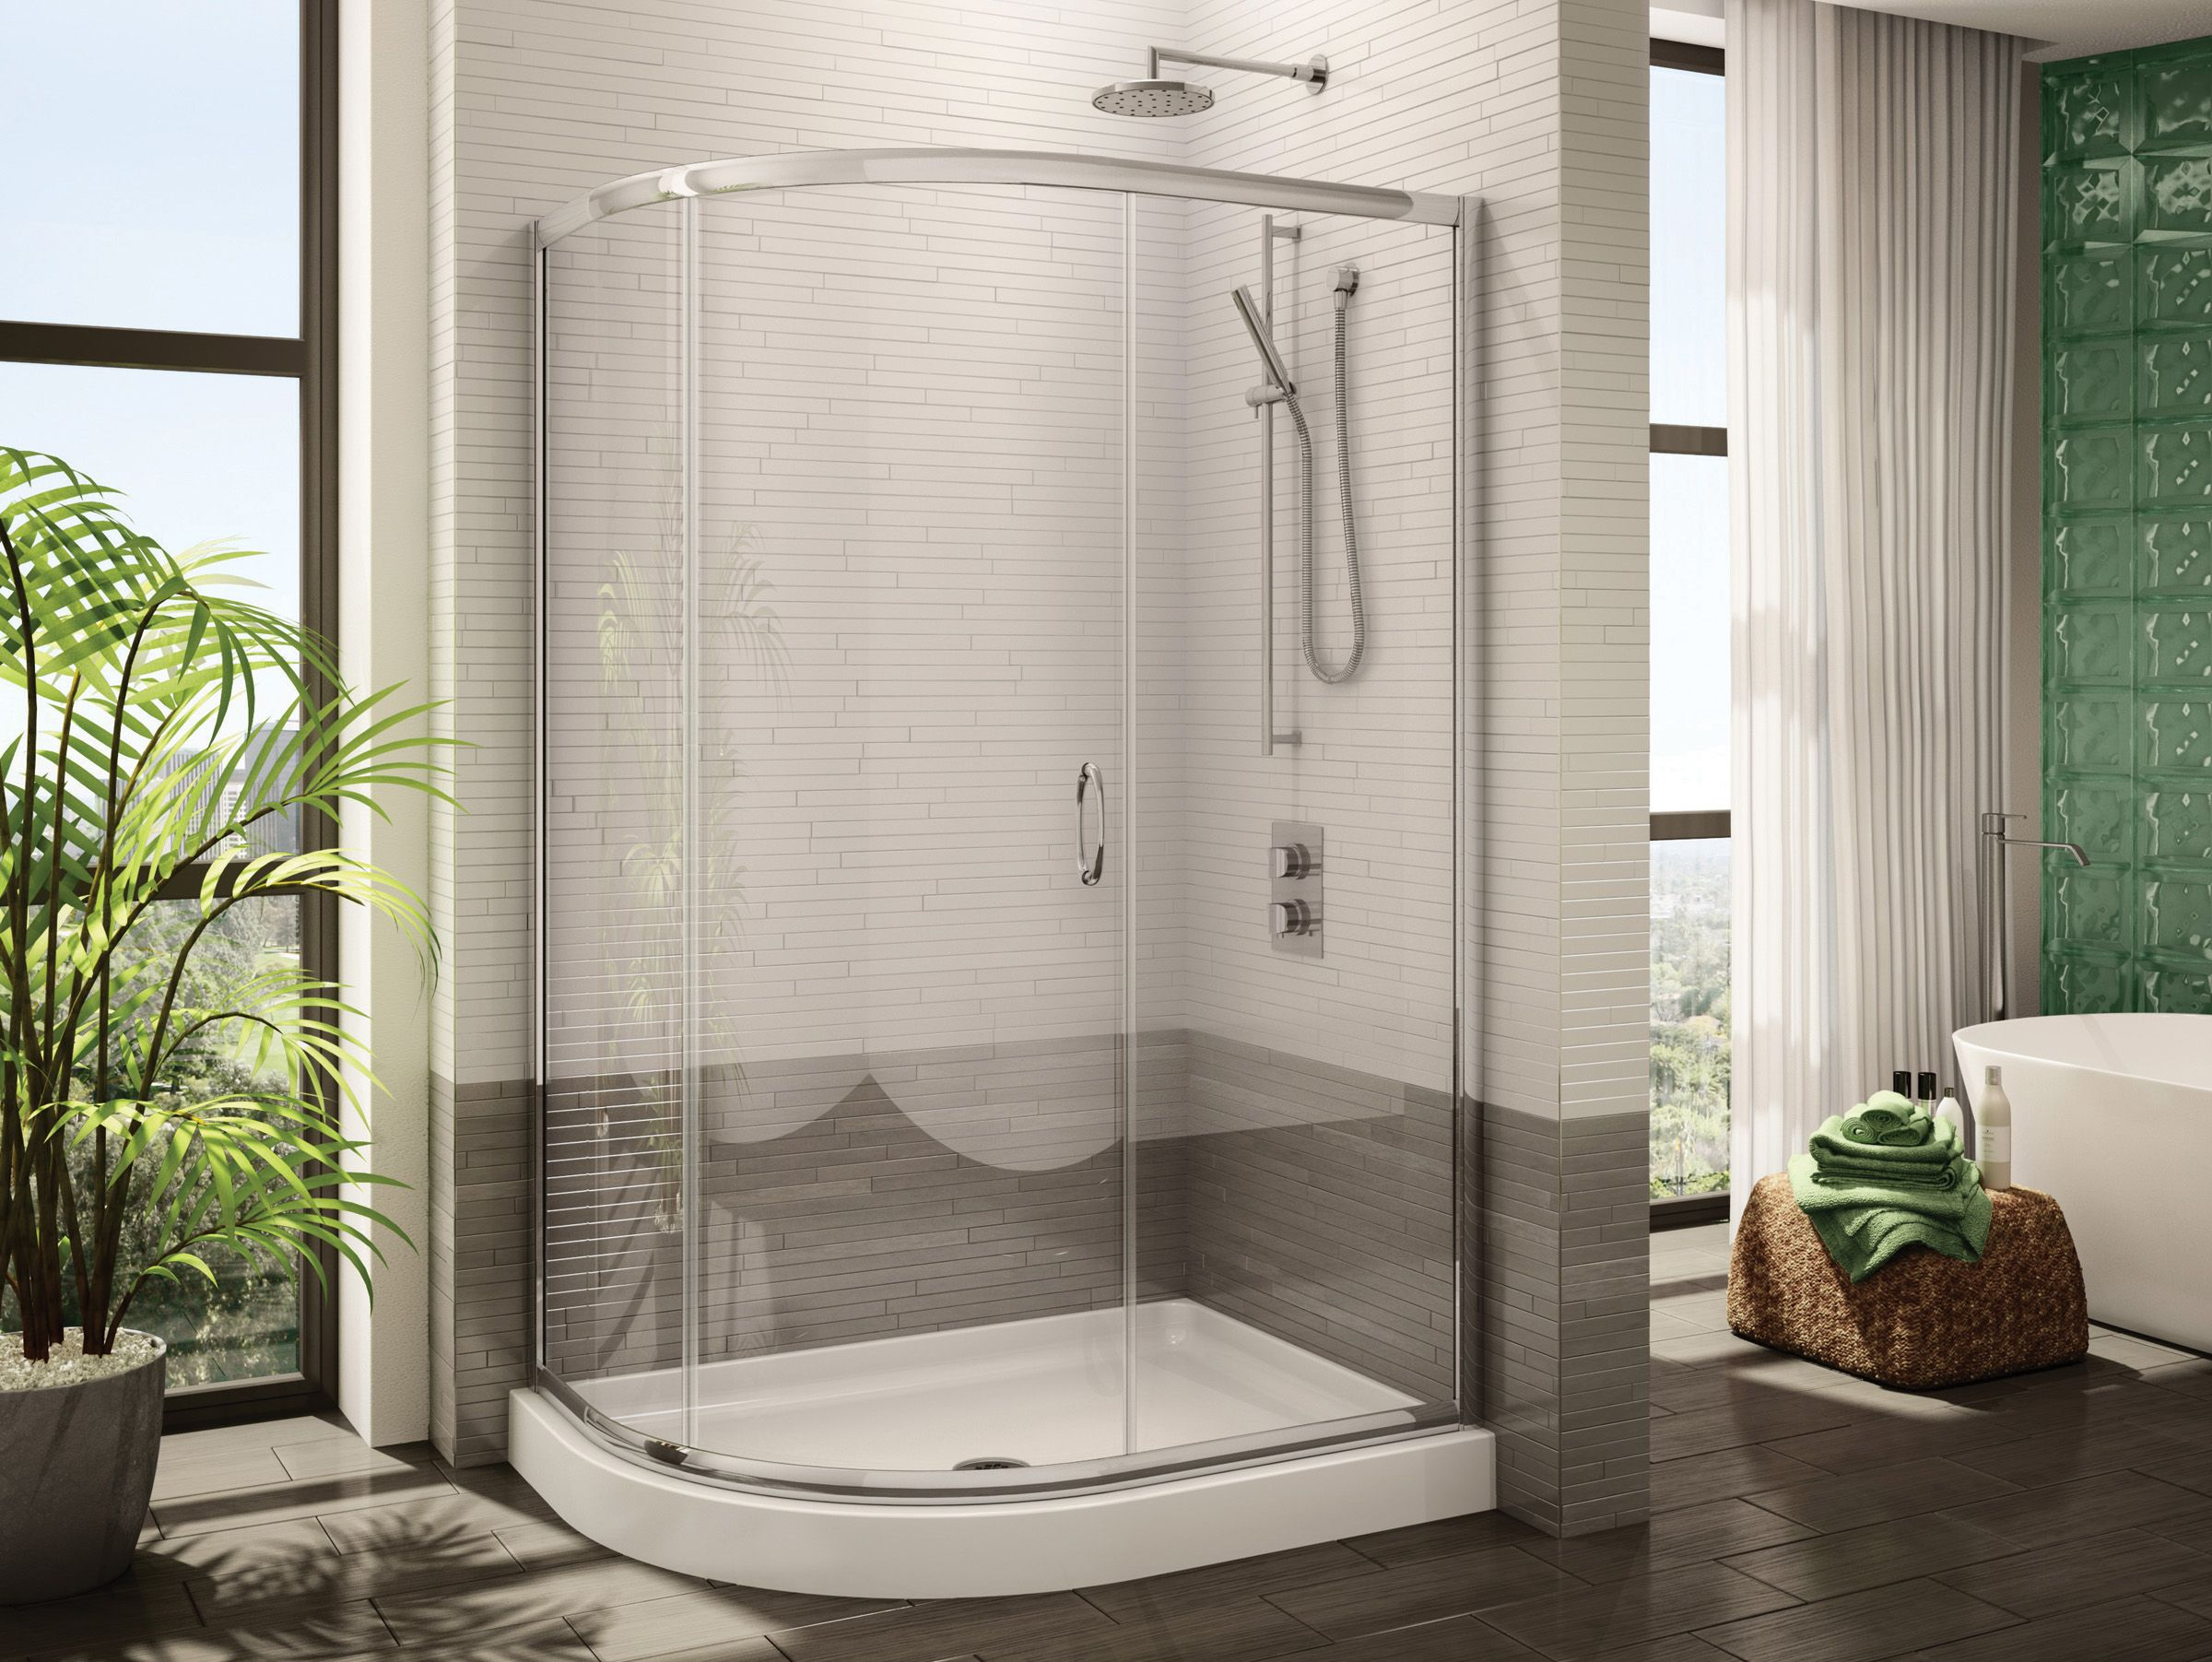 Fleurcou0027s Half Round Three Frameless Curved Glass Sliding Shower Door /  Signature Collection